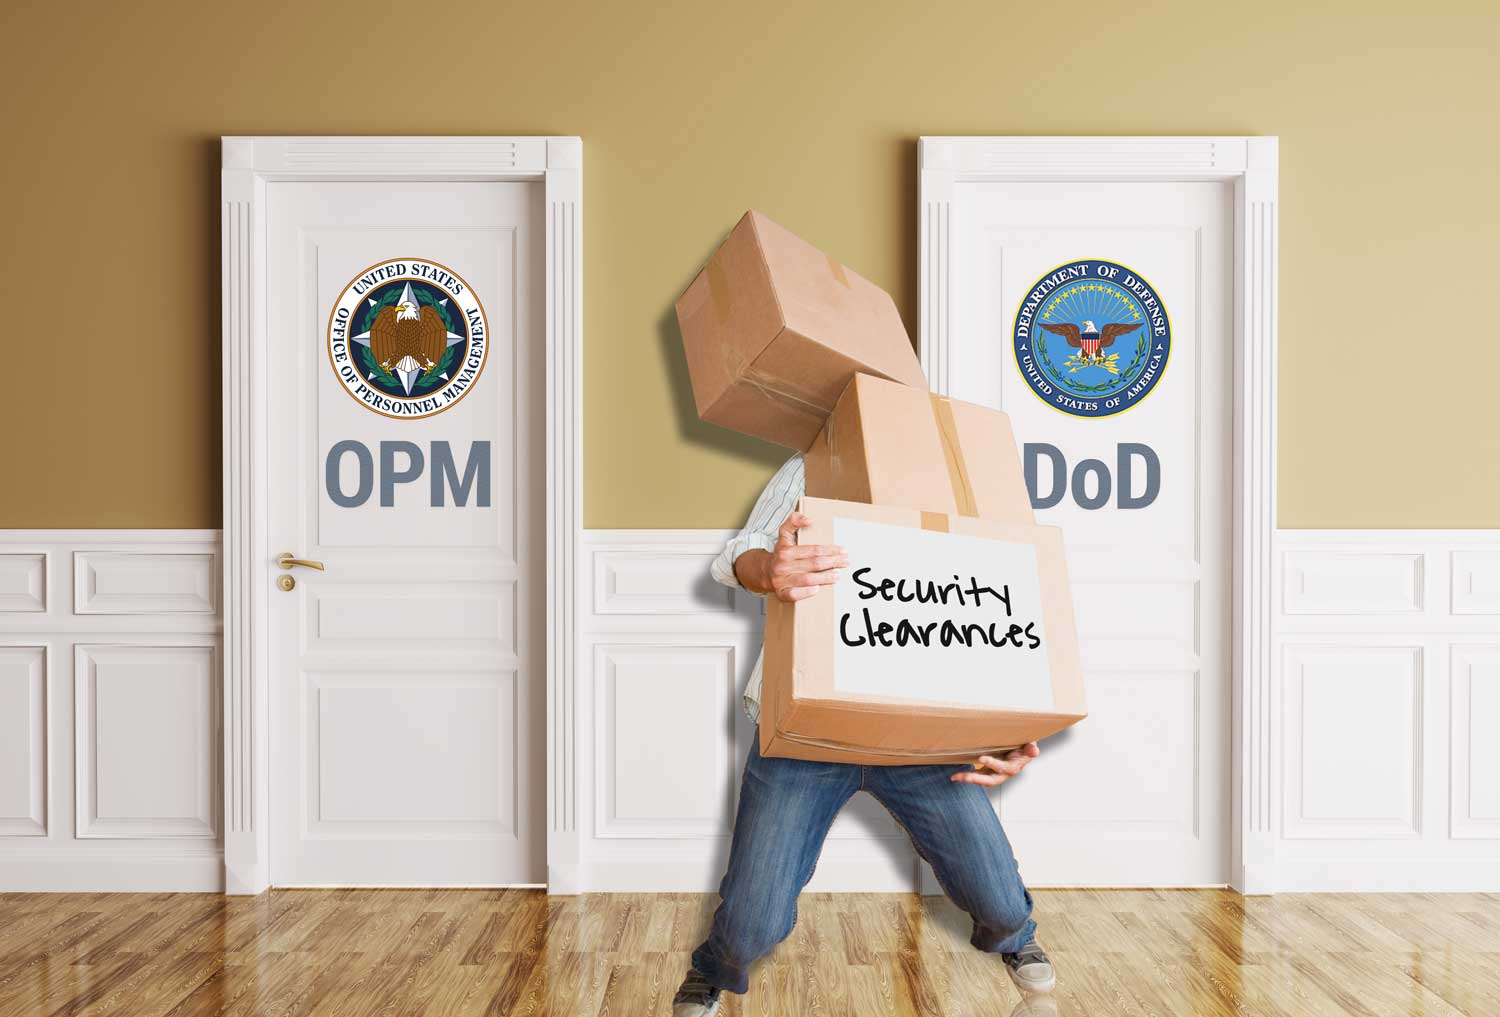 Why OPM is warning against DoD reclaiming the security clearance